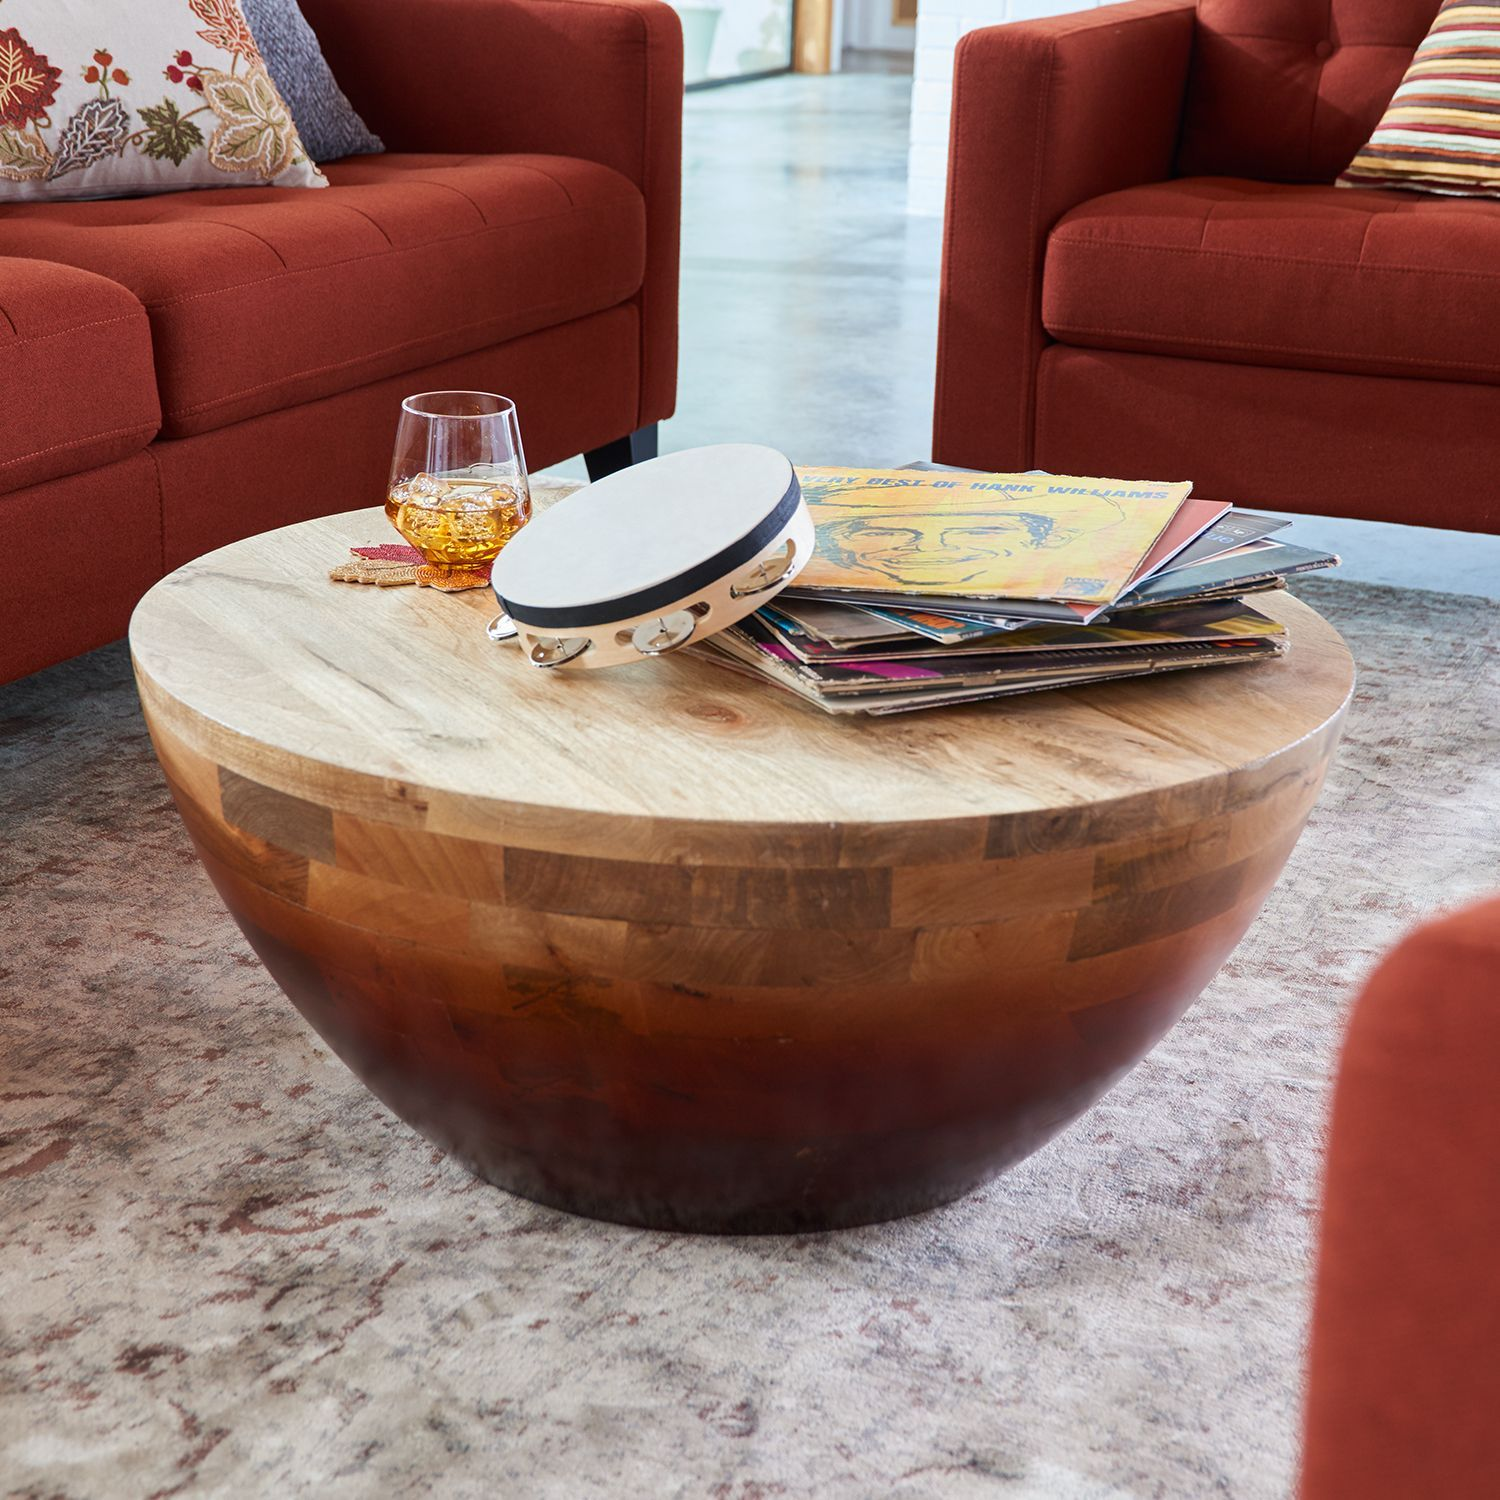 Pier One 254 32 Lincoln Collection Glass Top Round Coffee Table Round Glass Coffee Table Iron Coffee Table Glass Top Coffee Table